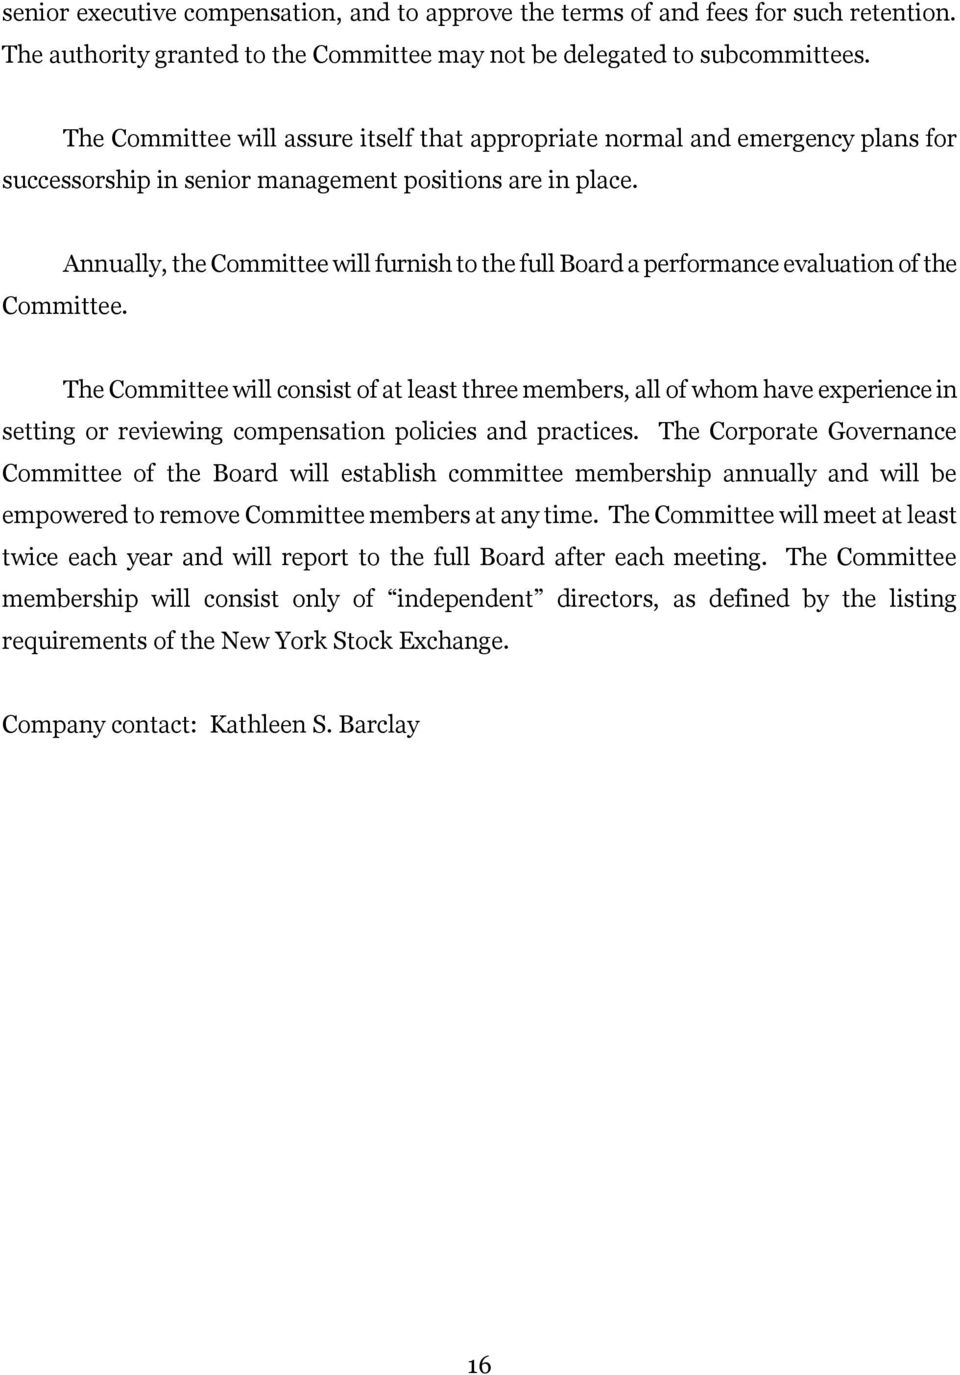 Annually, the Committee will furnish to the full Board a performance evaluation of the Committee.